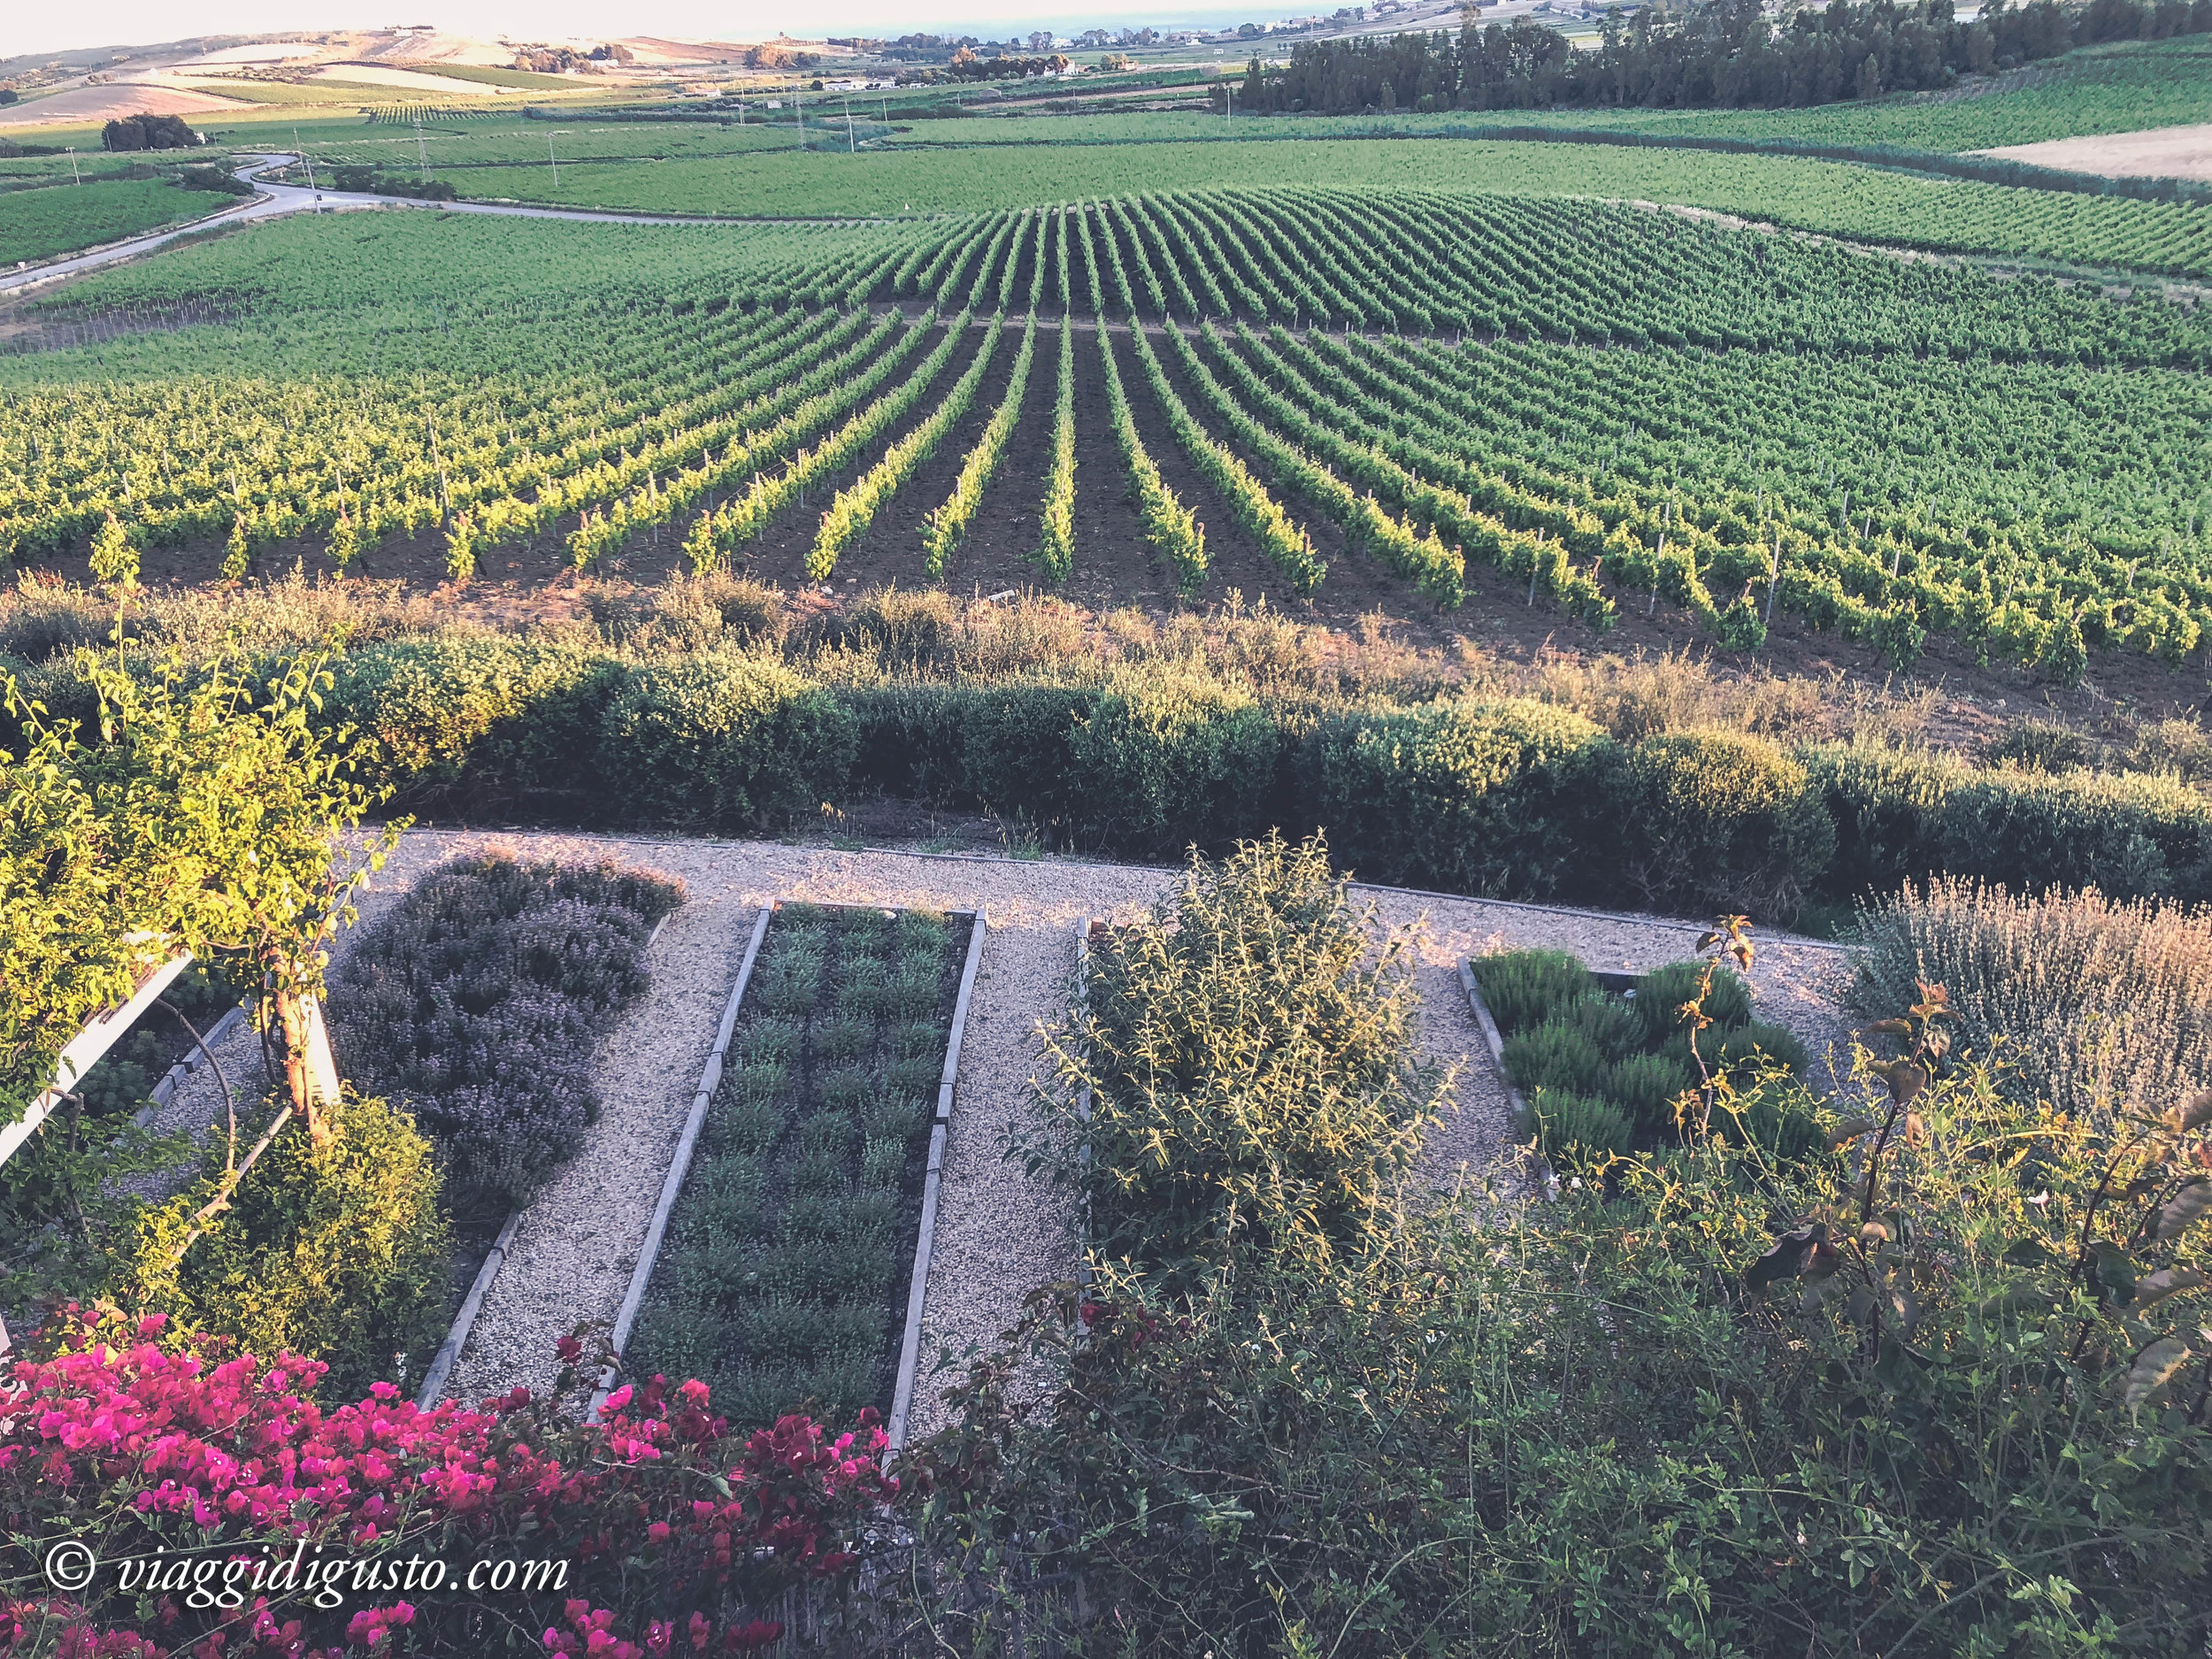 Herb gardens and vineyards at La Foresteria.